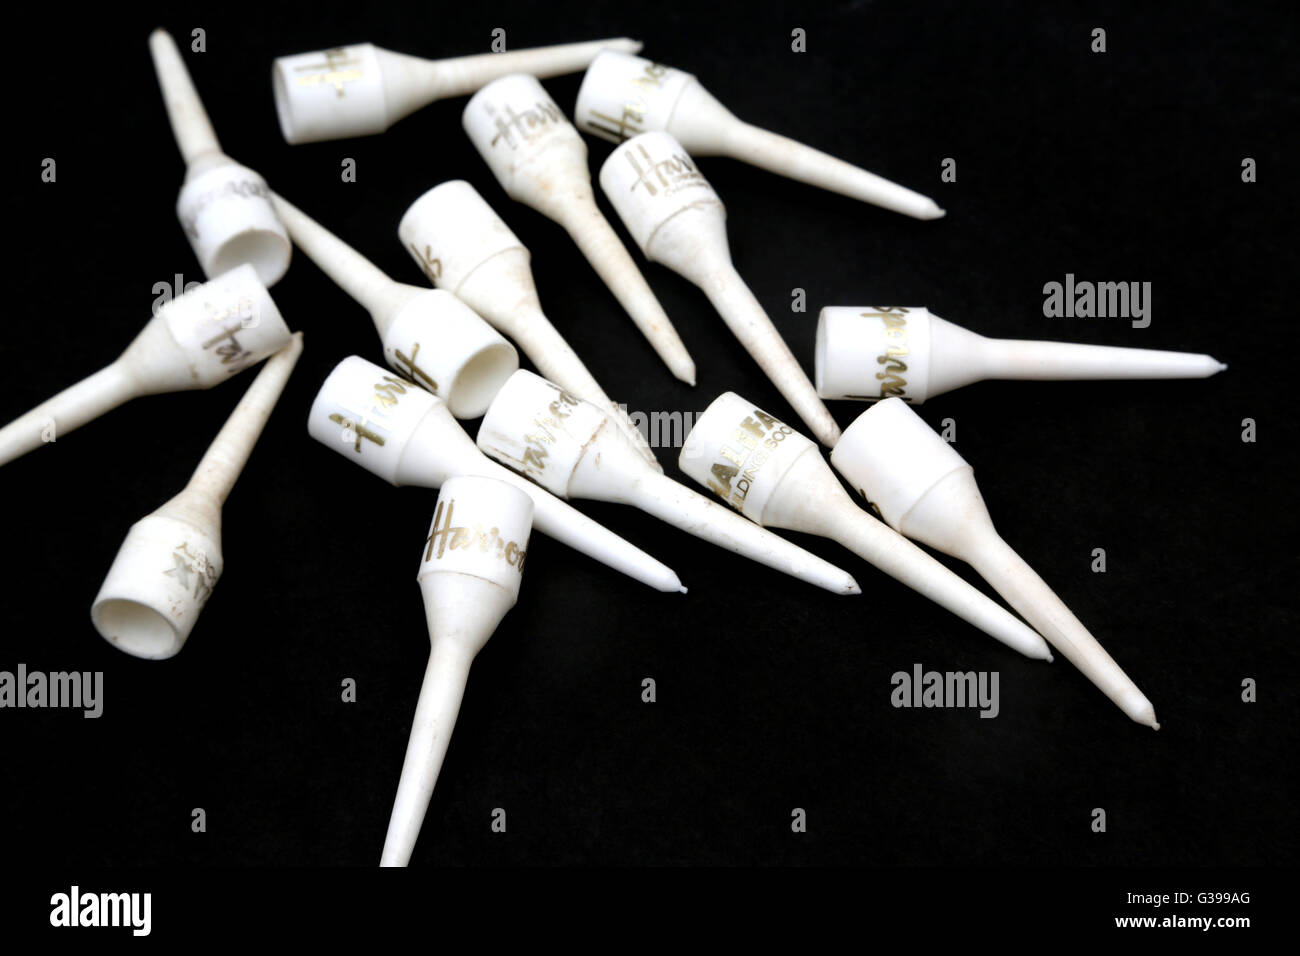 Harrods Golf Tees - Stock Image